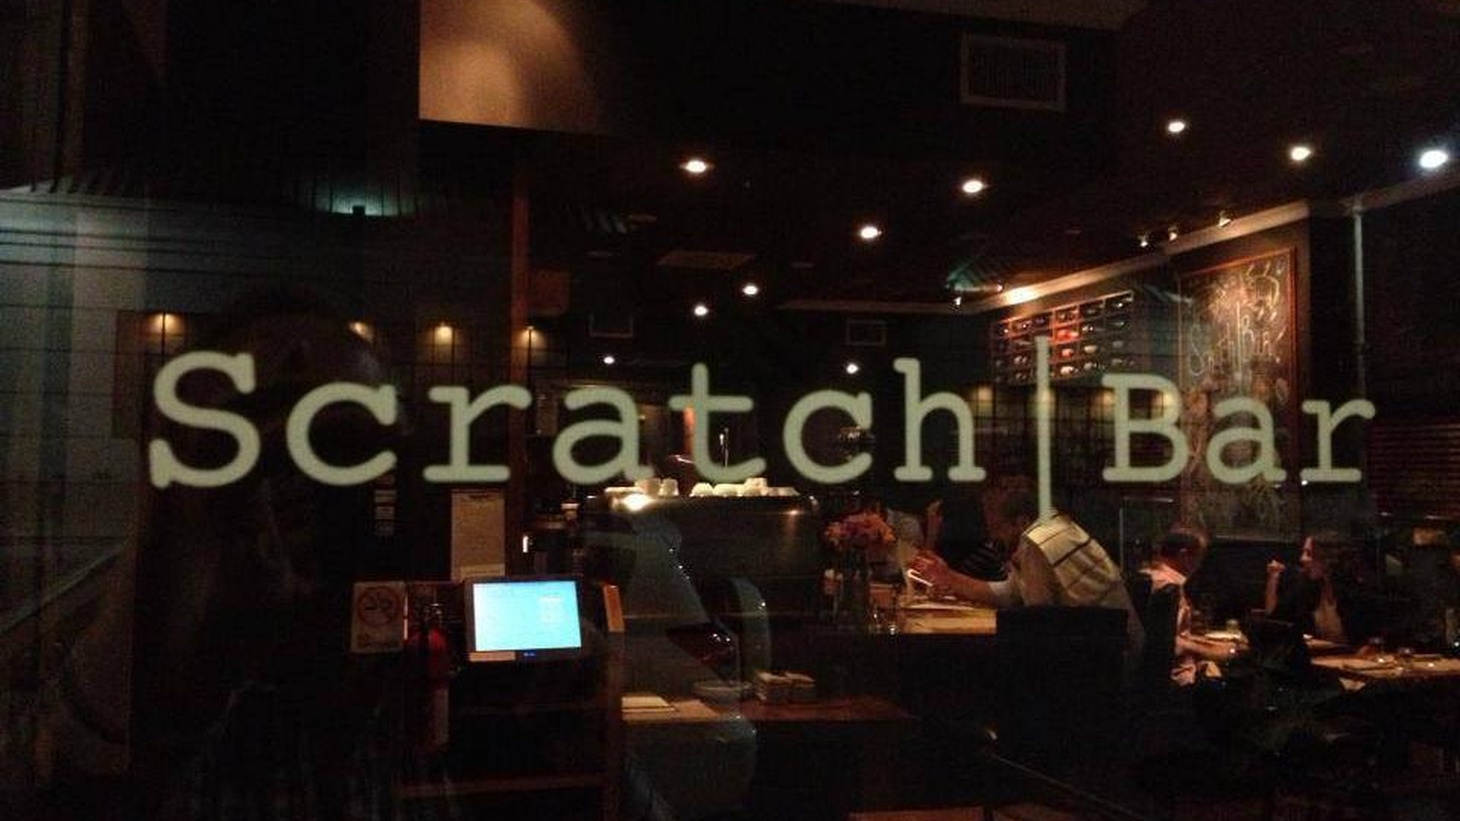 """Jonathan GoldcallsScratch Bara """"hyper-modern gastropub"""" in Beverly Hills that's serving up dishes with quirky presentation."""